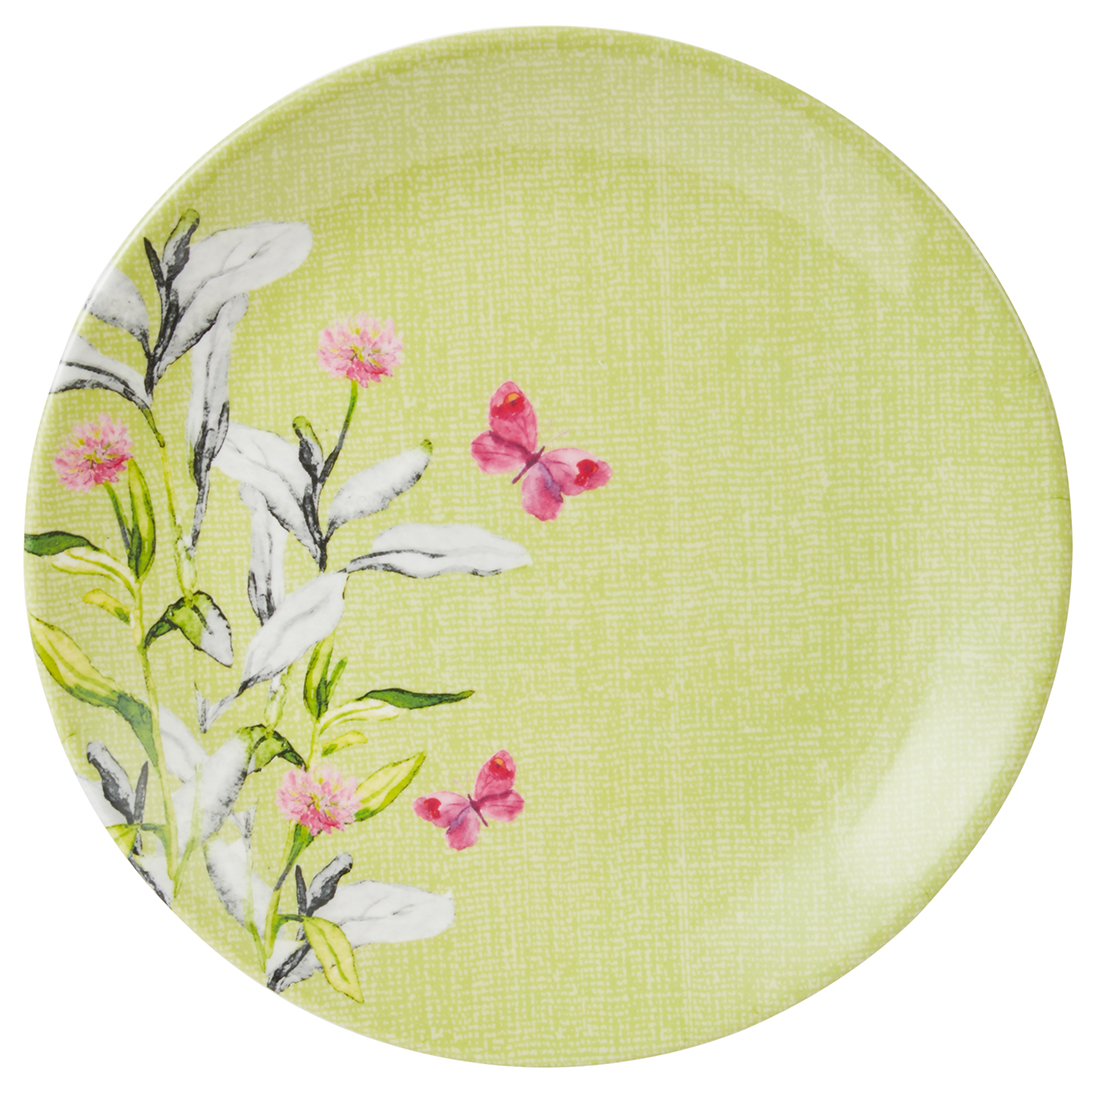 Aster Quater Plate Plates in Multicolour Colour by Living Essence